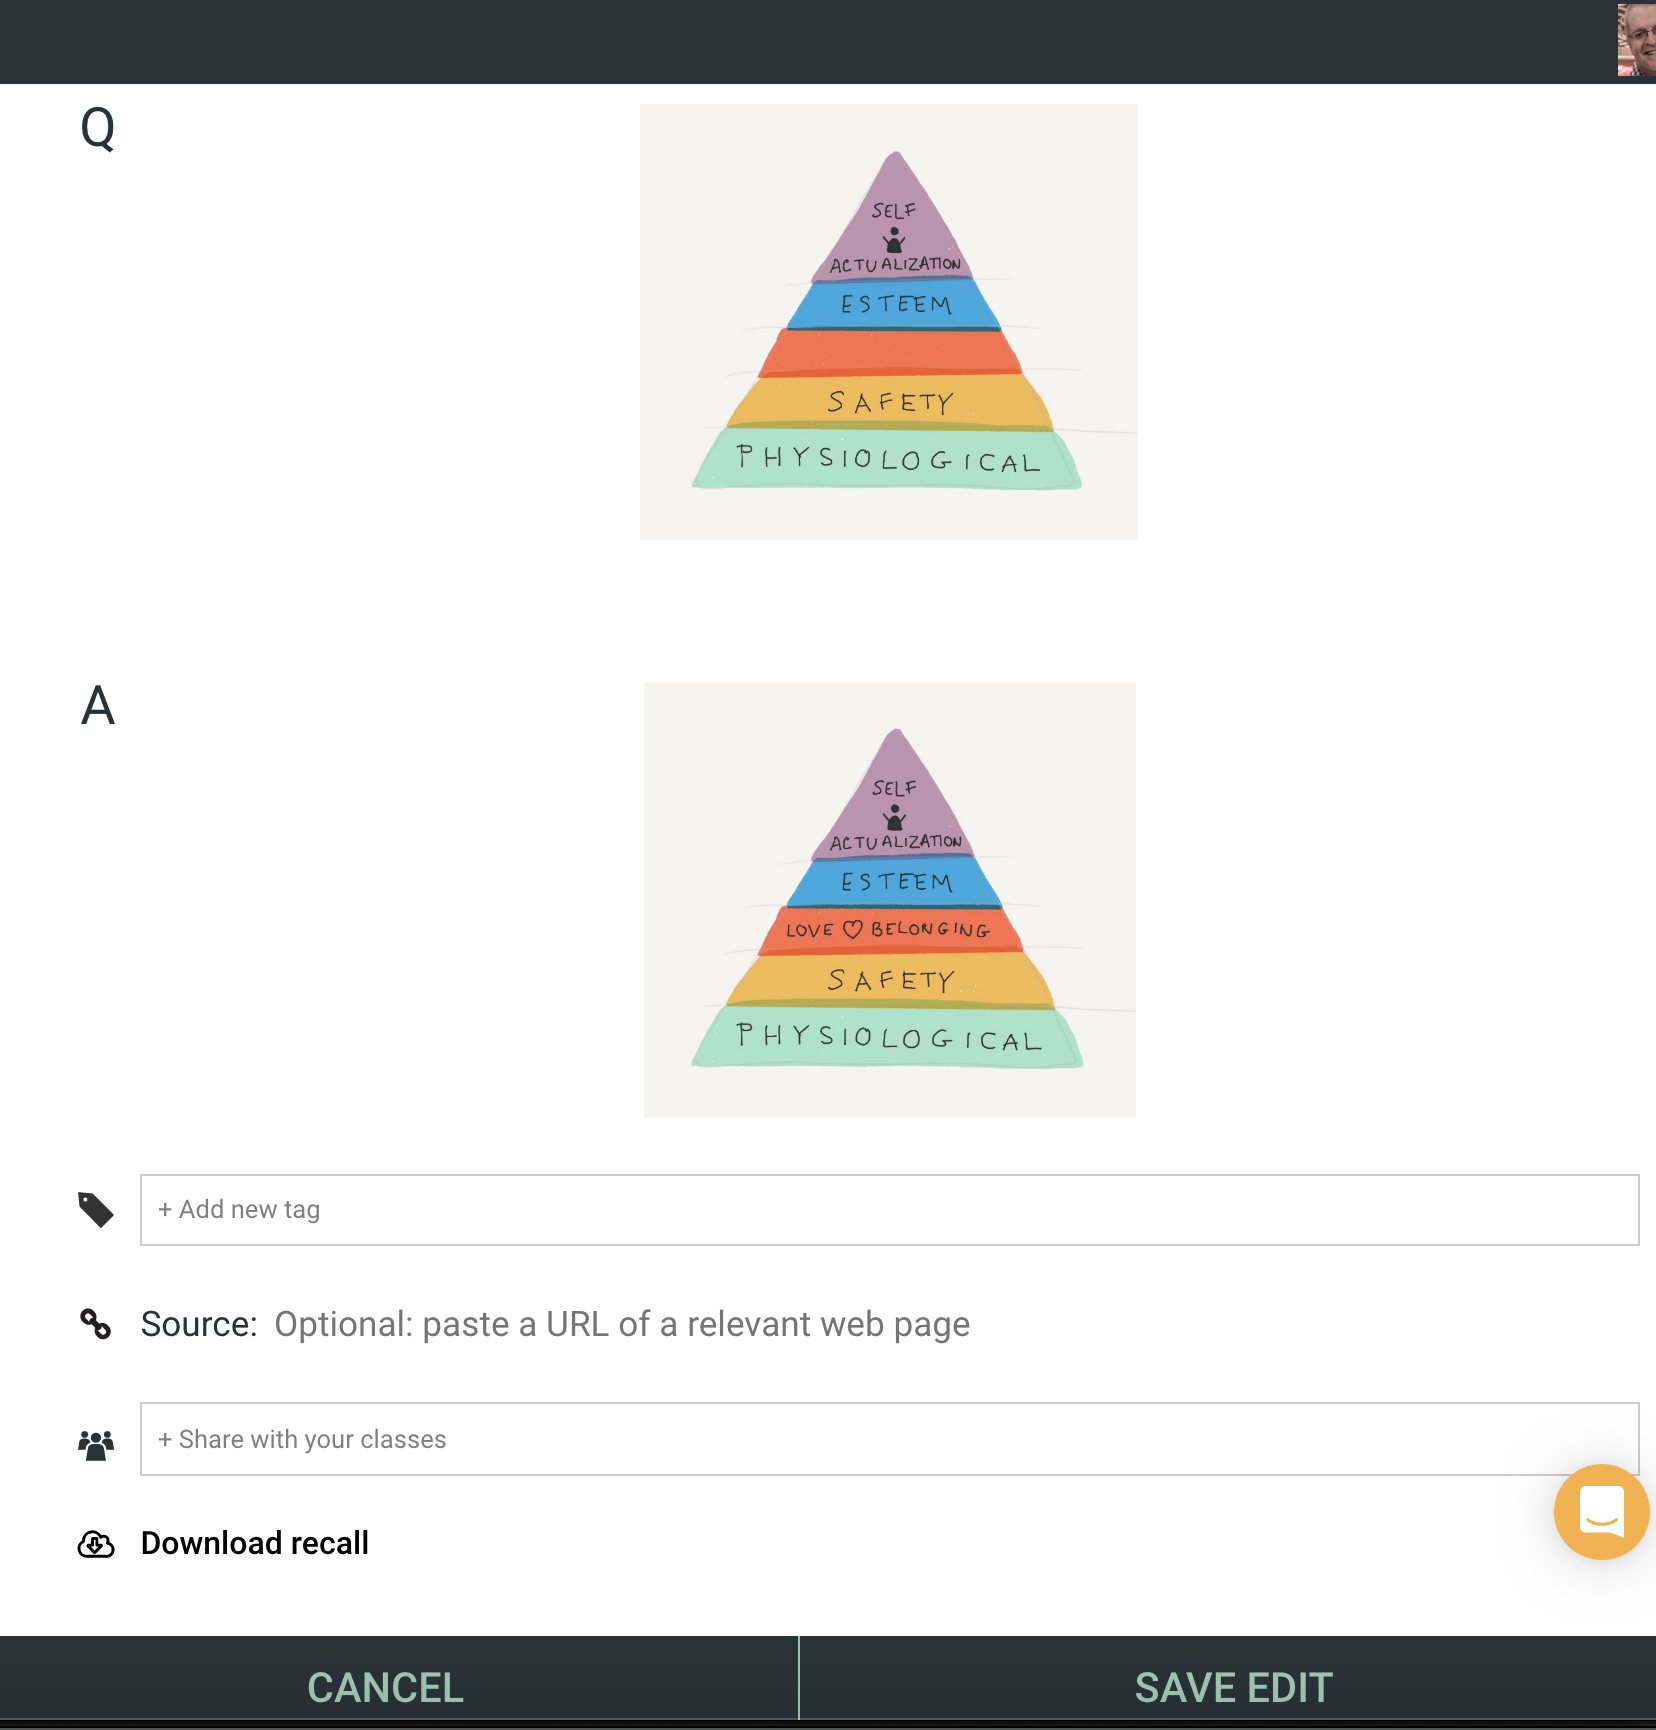 A depiction of a flashcard created at idorecall.com showing Maslow's Hierarchy of Needs Pyramid.